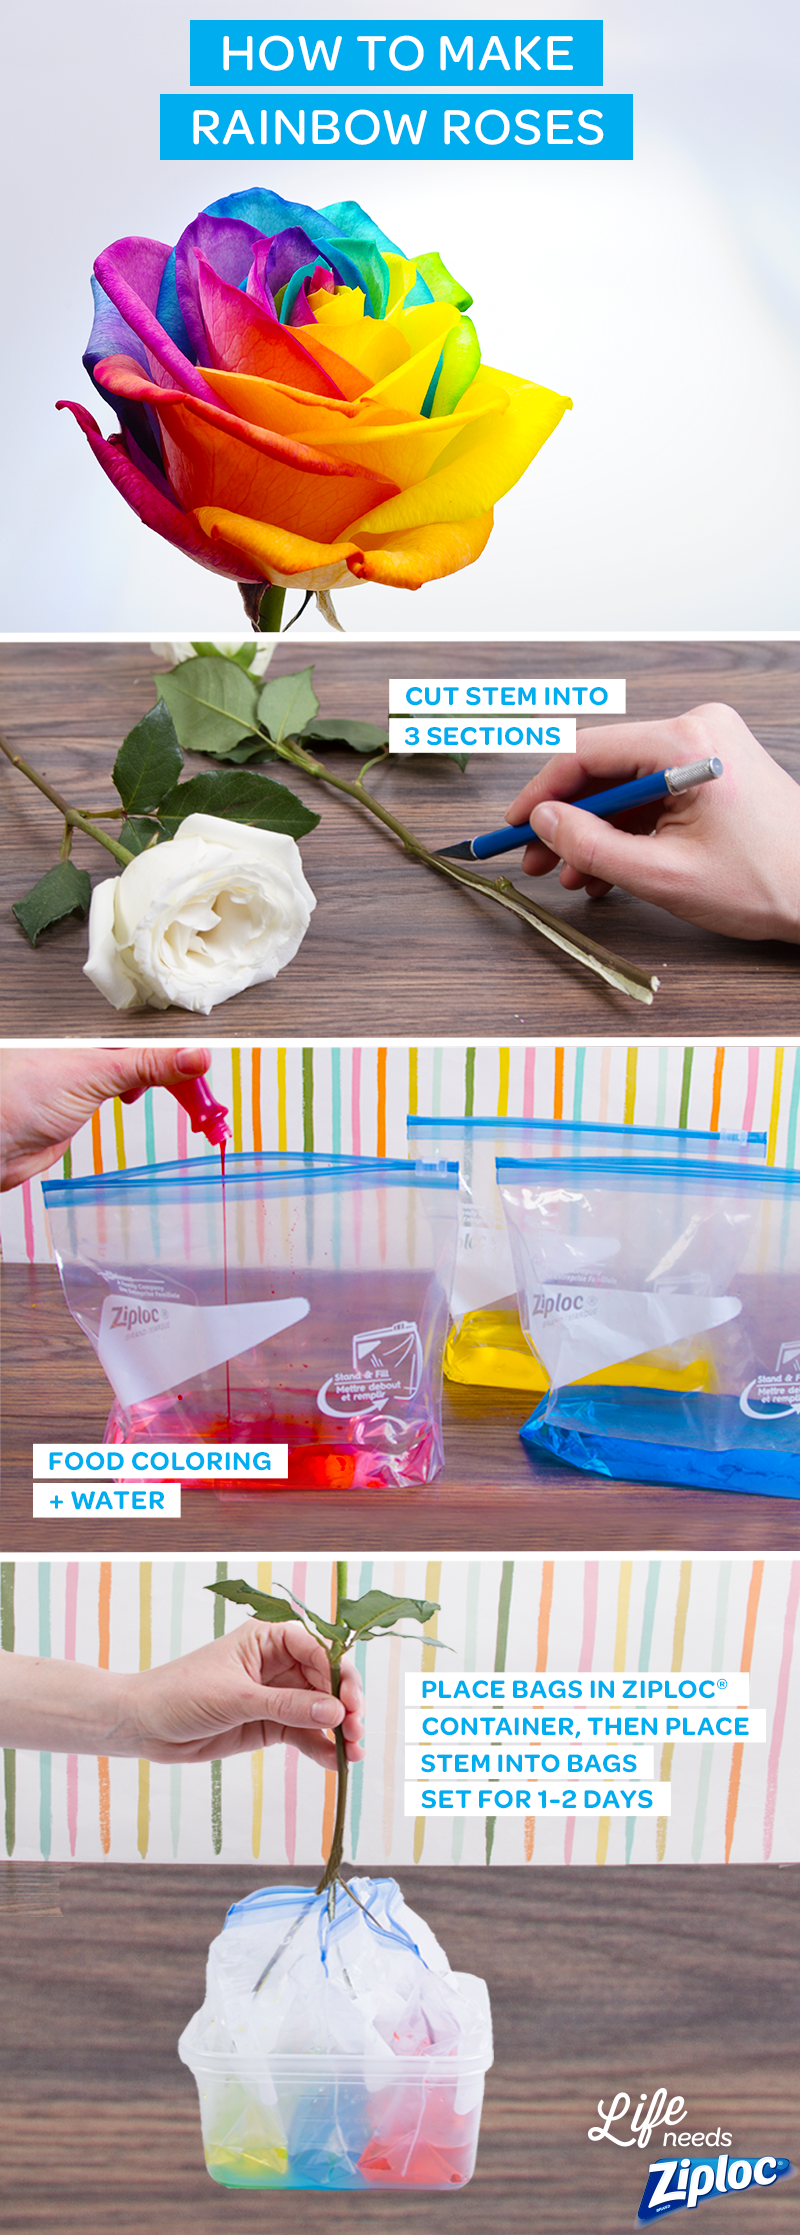 Brighten up your house with these gorgeous rainbow roses. It's simple: just spilt a stem 3 ways (use a knife with parental supervision), then dip into 3 Ziploc® Slider bags filled with different-colored dyes. An inexpensive and DIY way to make mom's day or a great rainy day craft to do with the kids. #rainbowroses